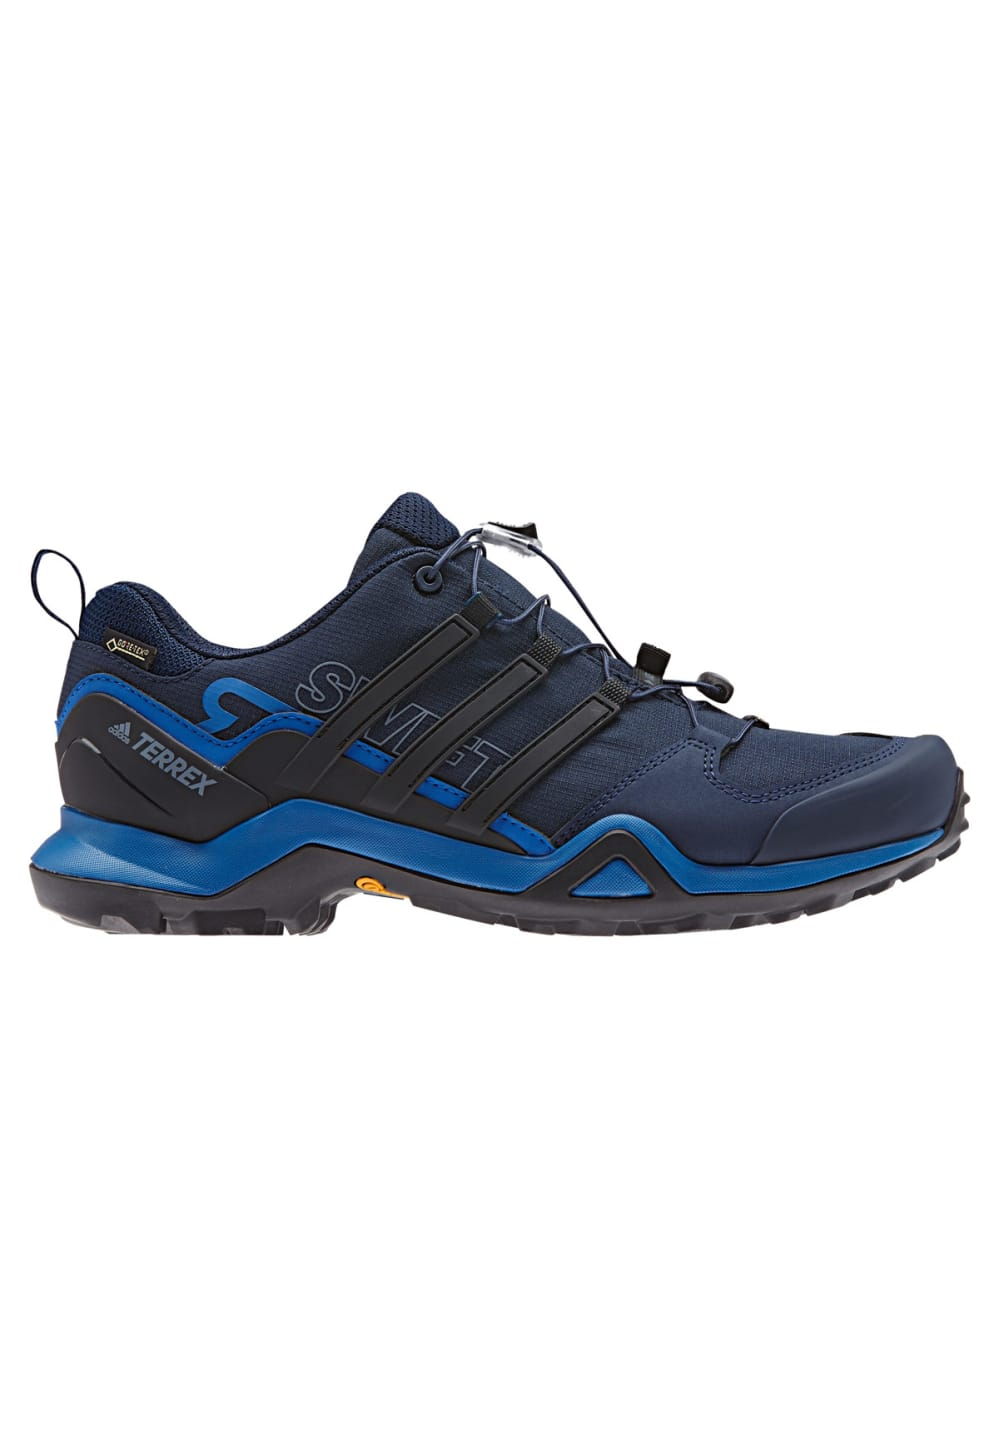 ... adidas TERREX Terrex Swift R2 GTX - Outdoor shoes for Men - Blue. Back  to Overview. 1  2. Previous f390adb43